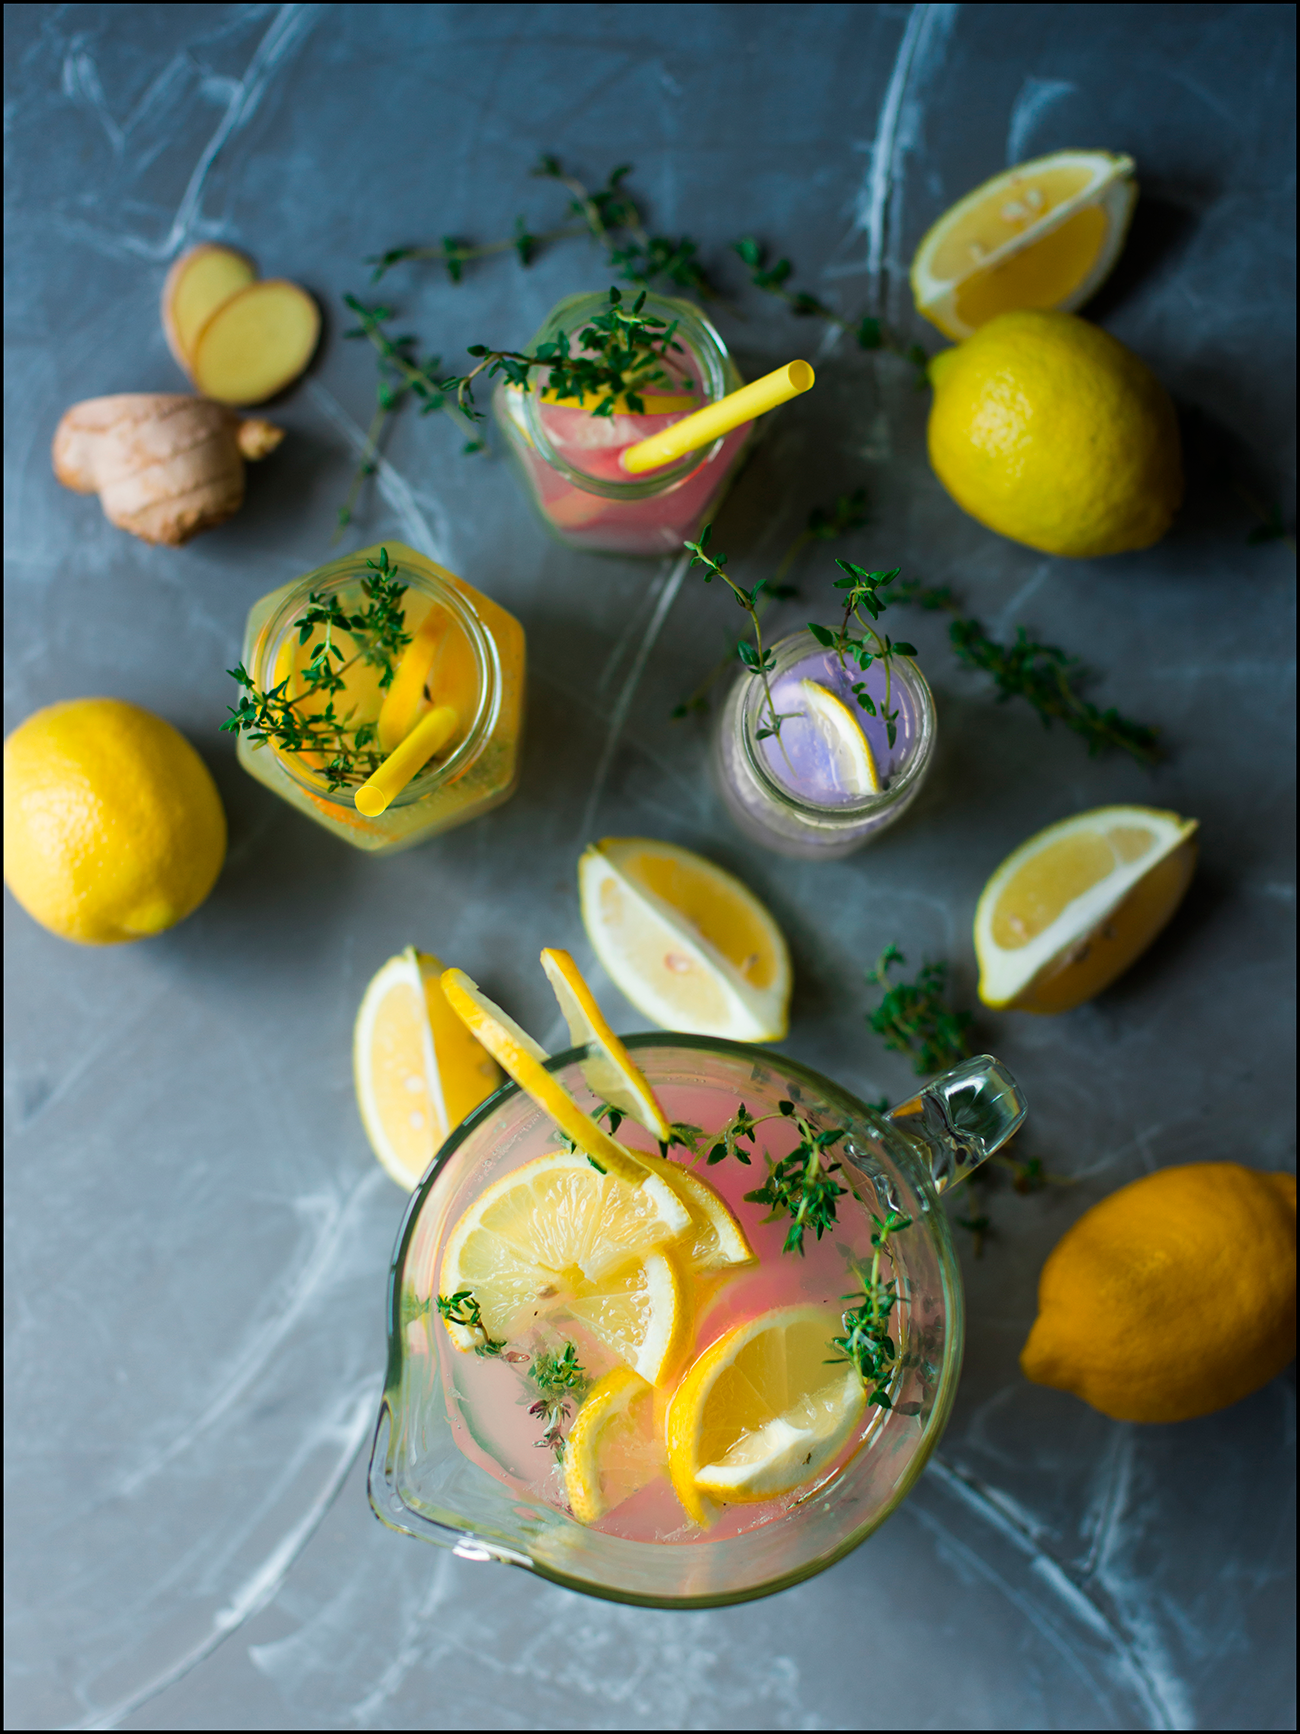 Perky Moose lemonades